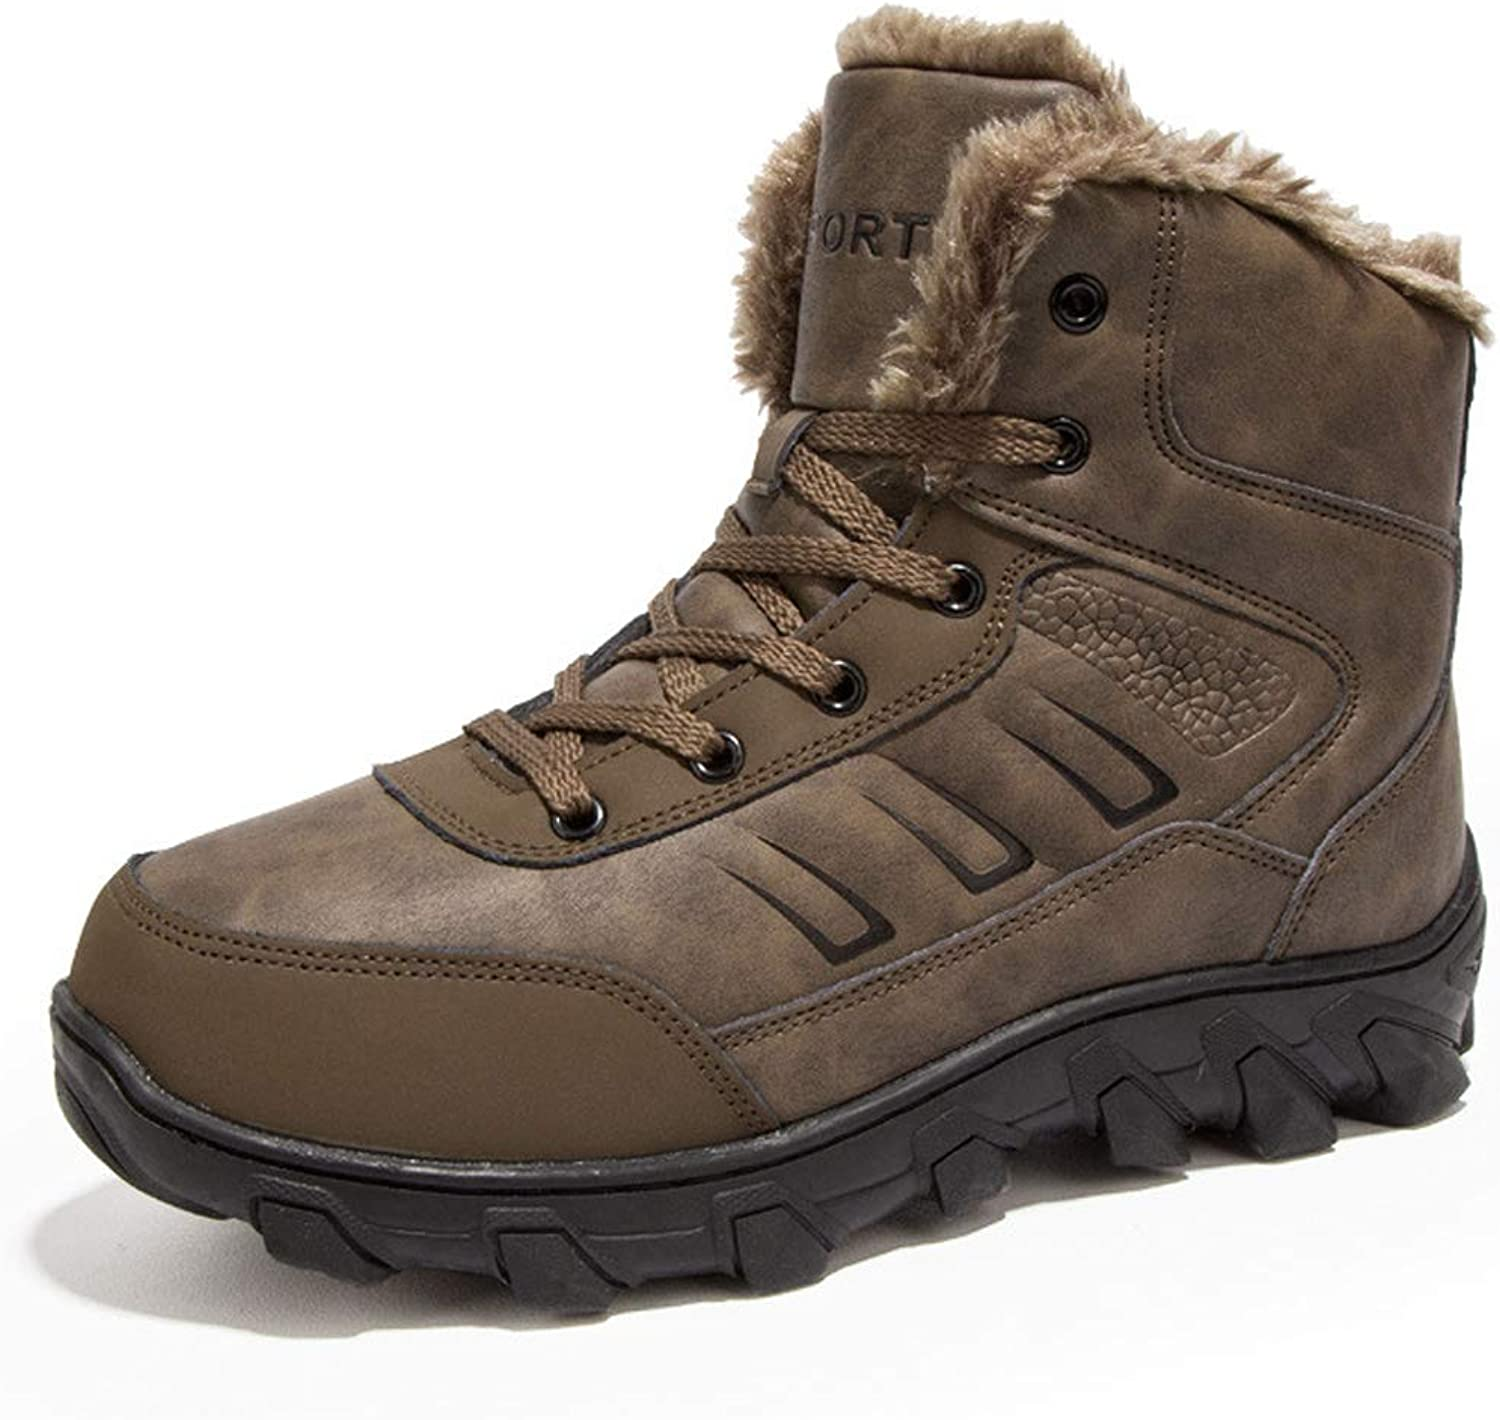 Men's Hiking shoes High-top Winter Warm Trekking Boot Lace Up Outdoor Anti Slip Leather shoes